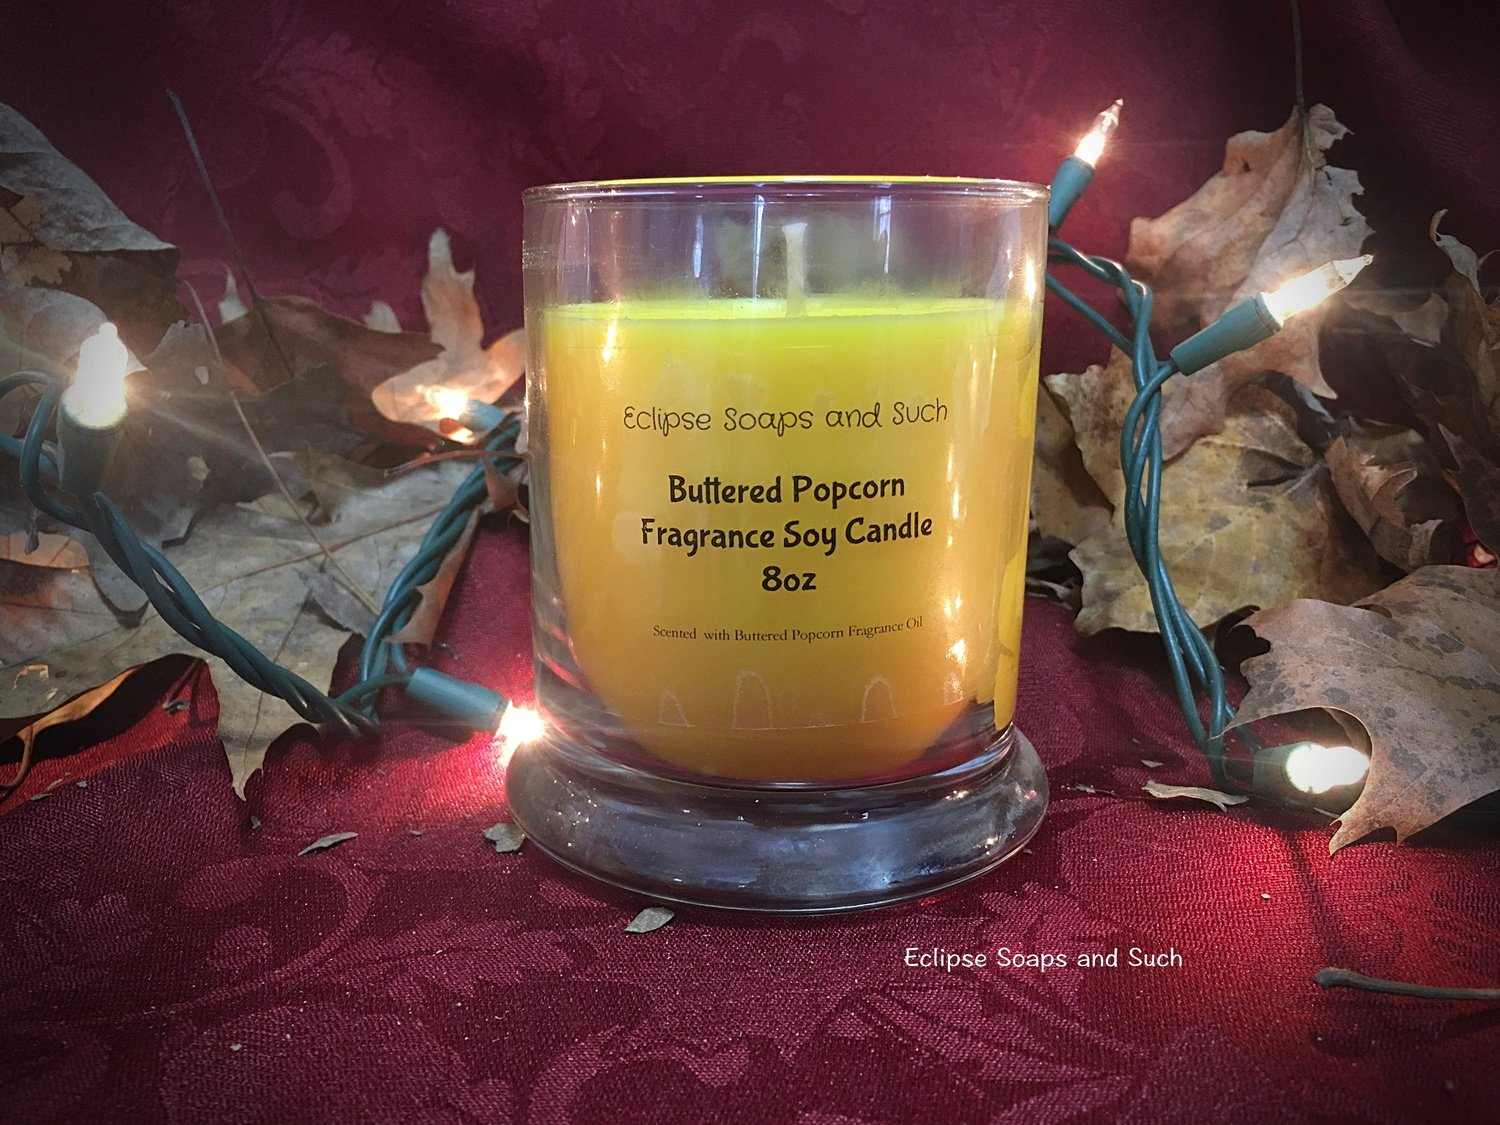 Buttered Popcorn Scented Soy Candle 8oz